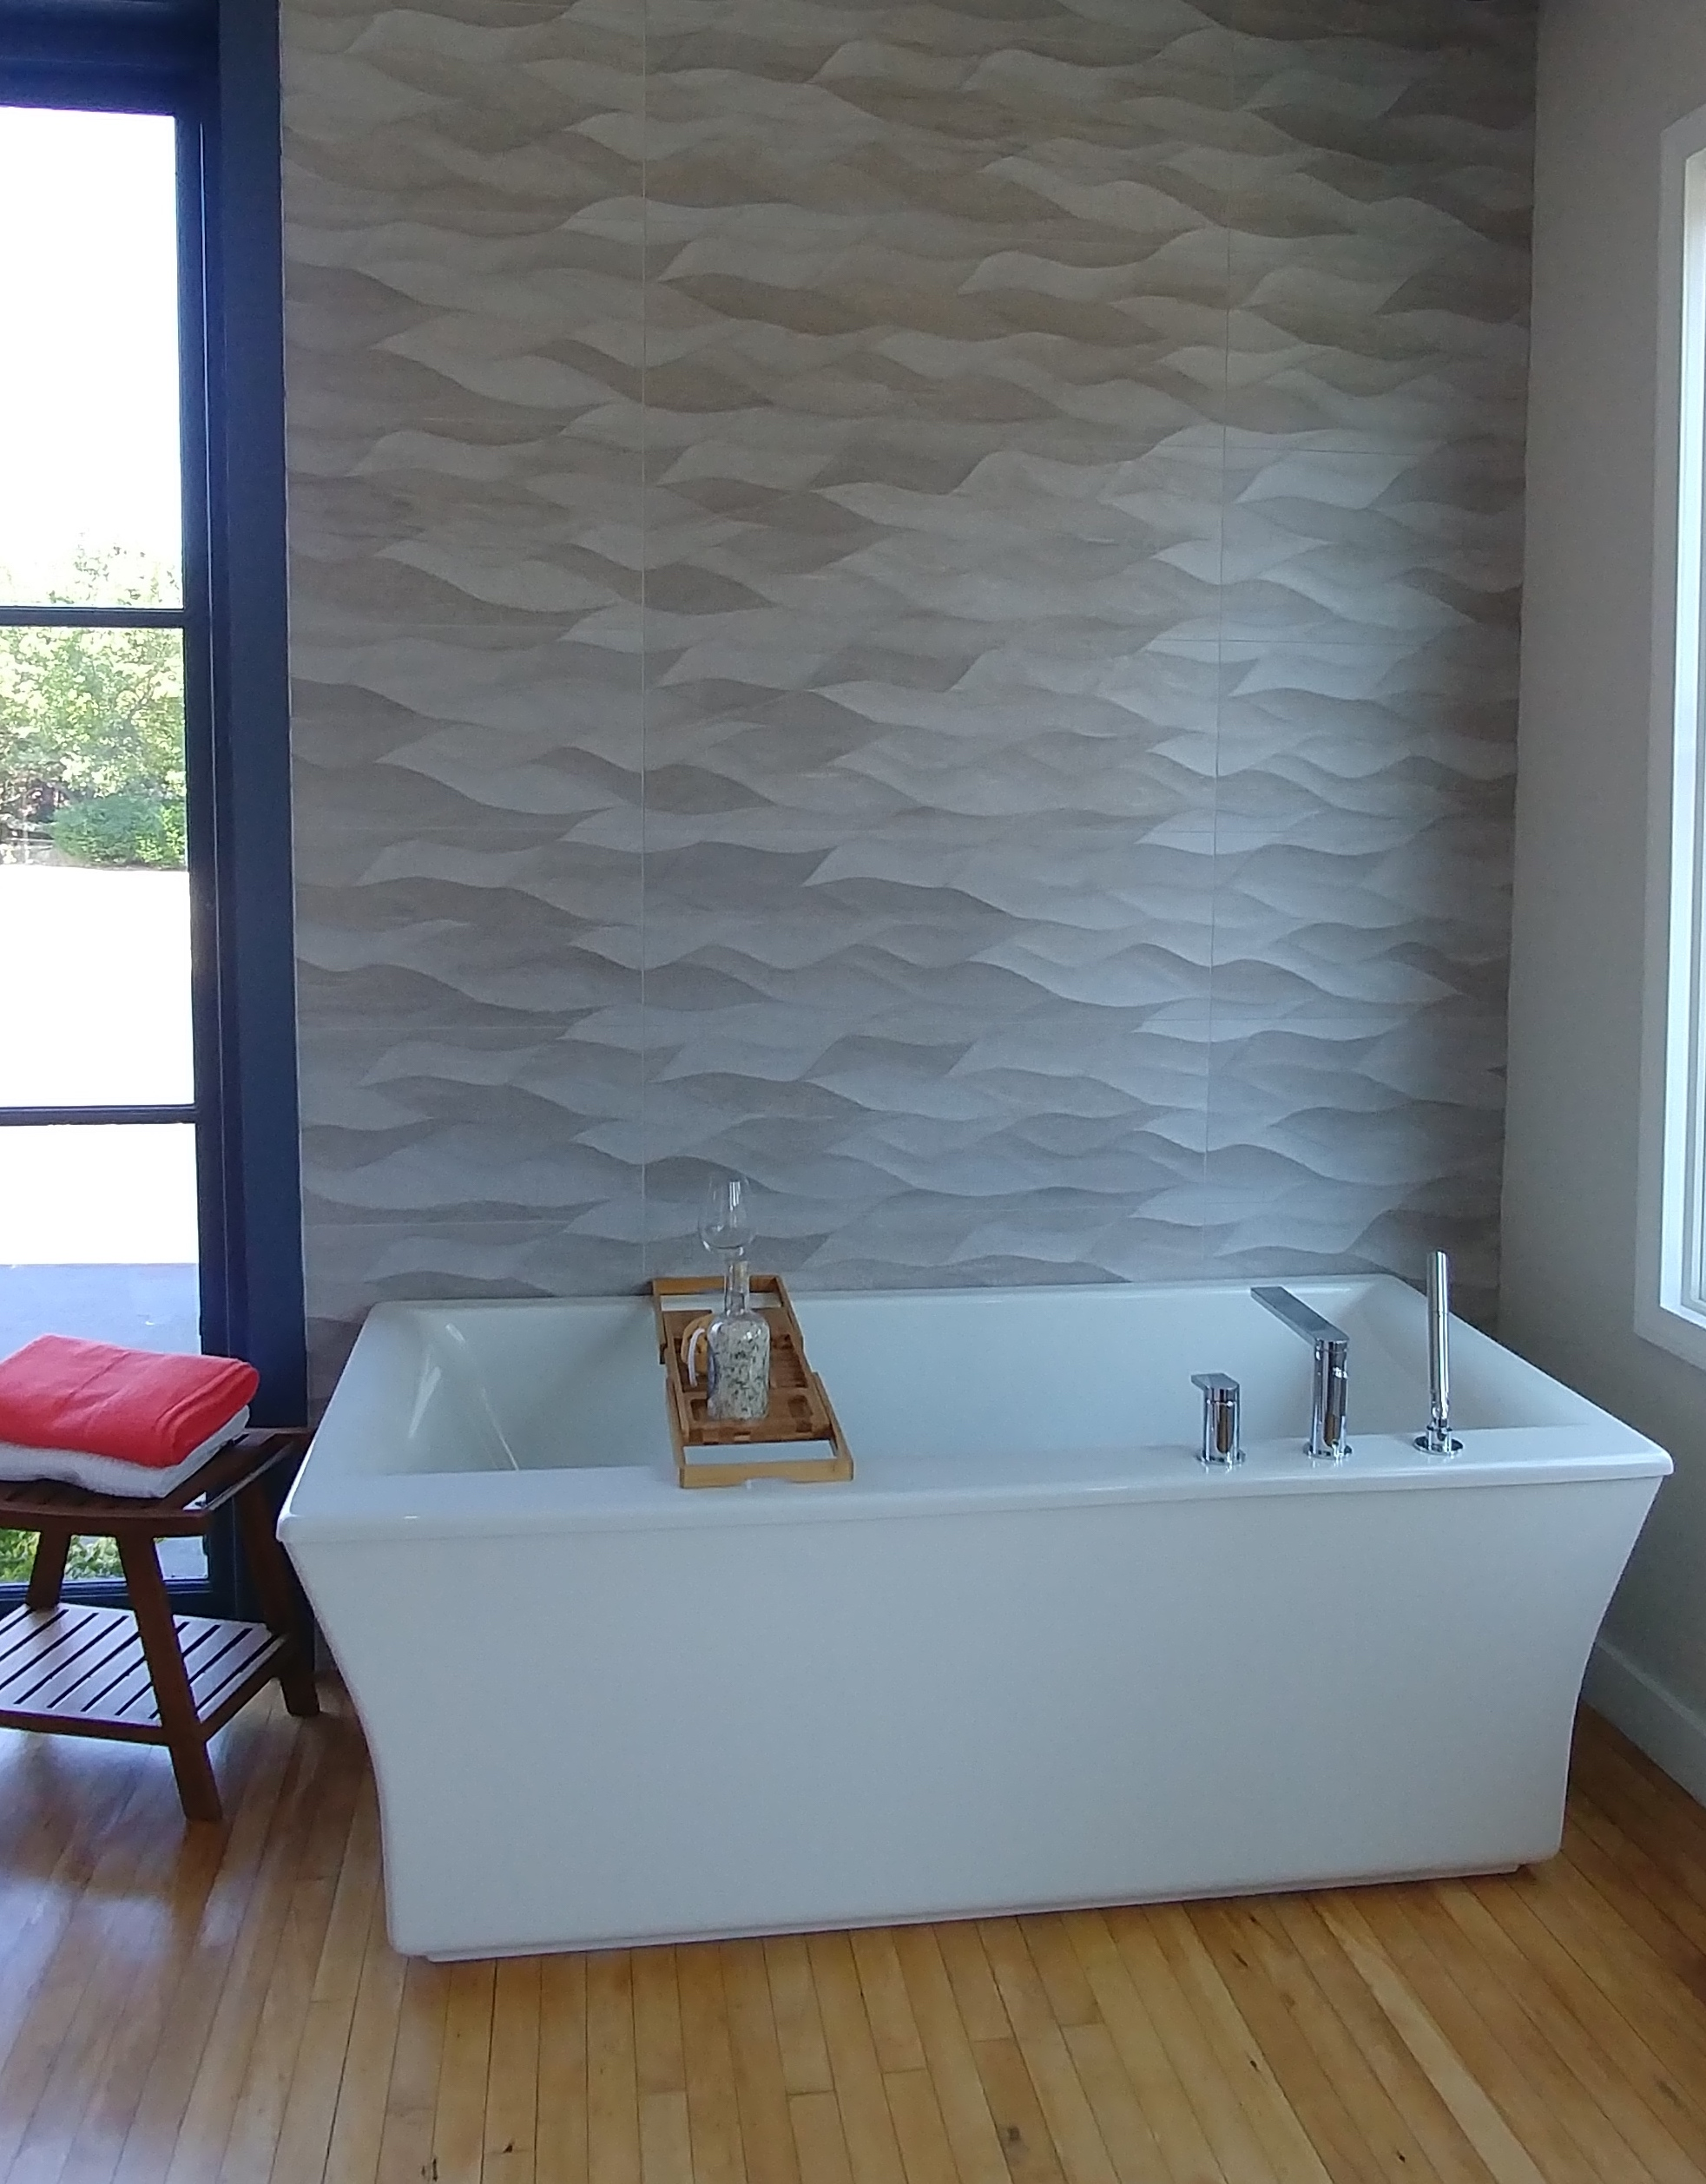 wall tile bathroom- 3d textured tile | Things To Do In Rhode Island ...